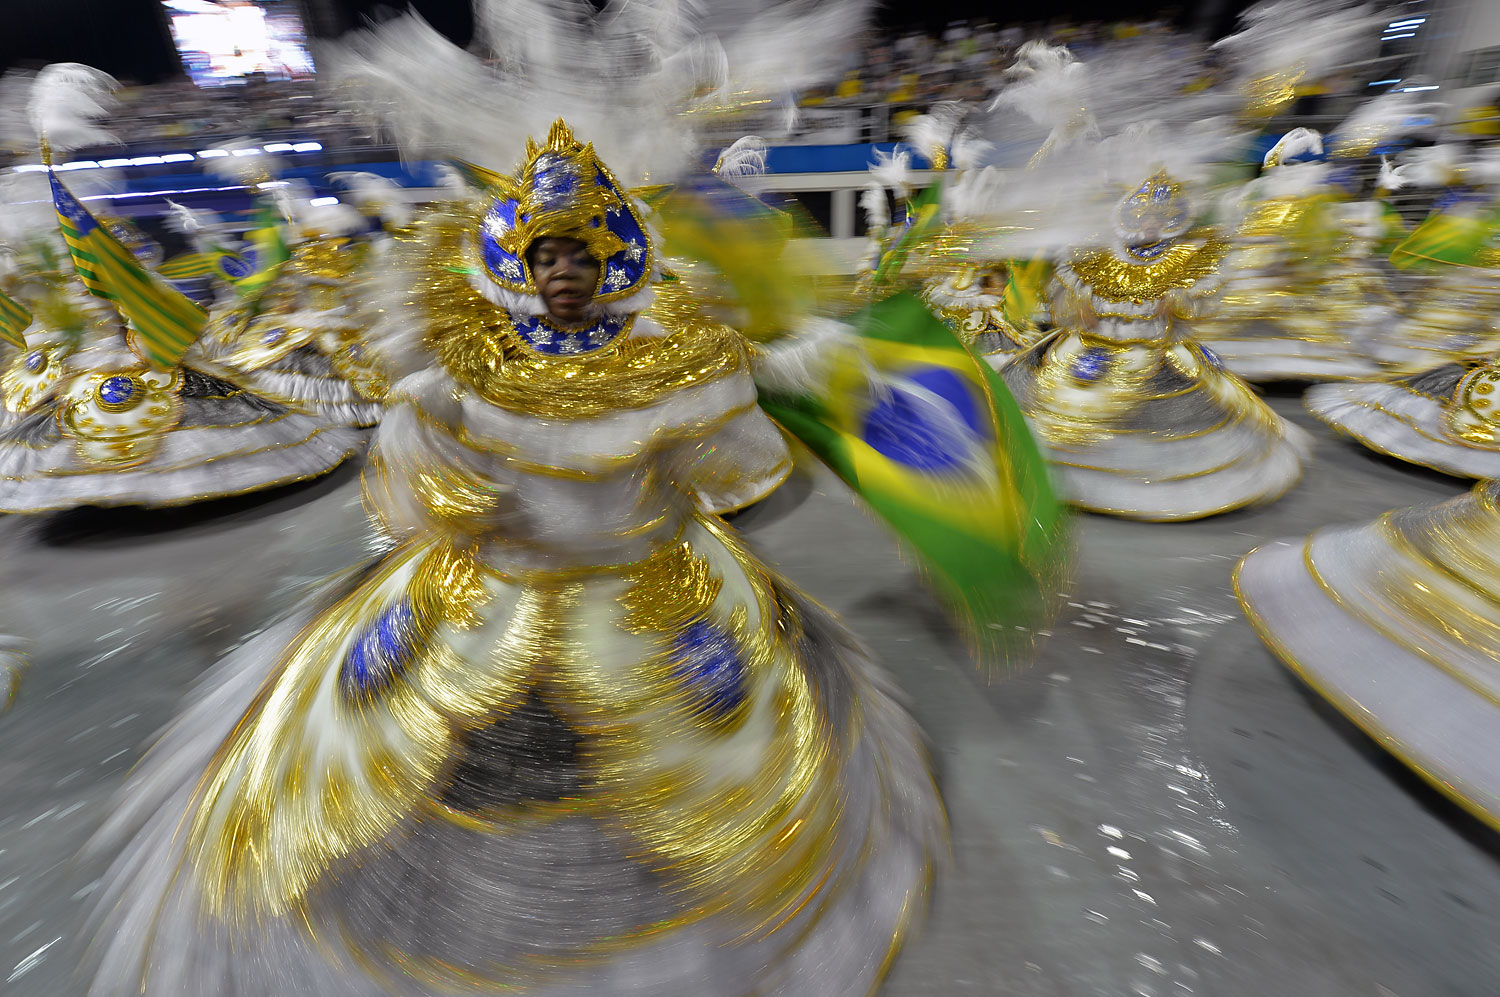 Revelers of Vai-Vai samba school perform during the first night of carnival parade in Sao Paulo, March 1, 2014.